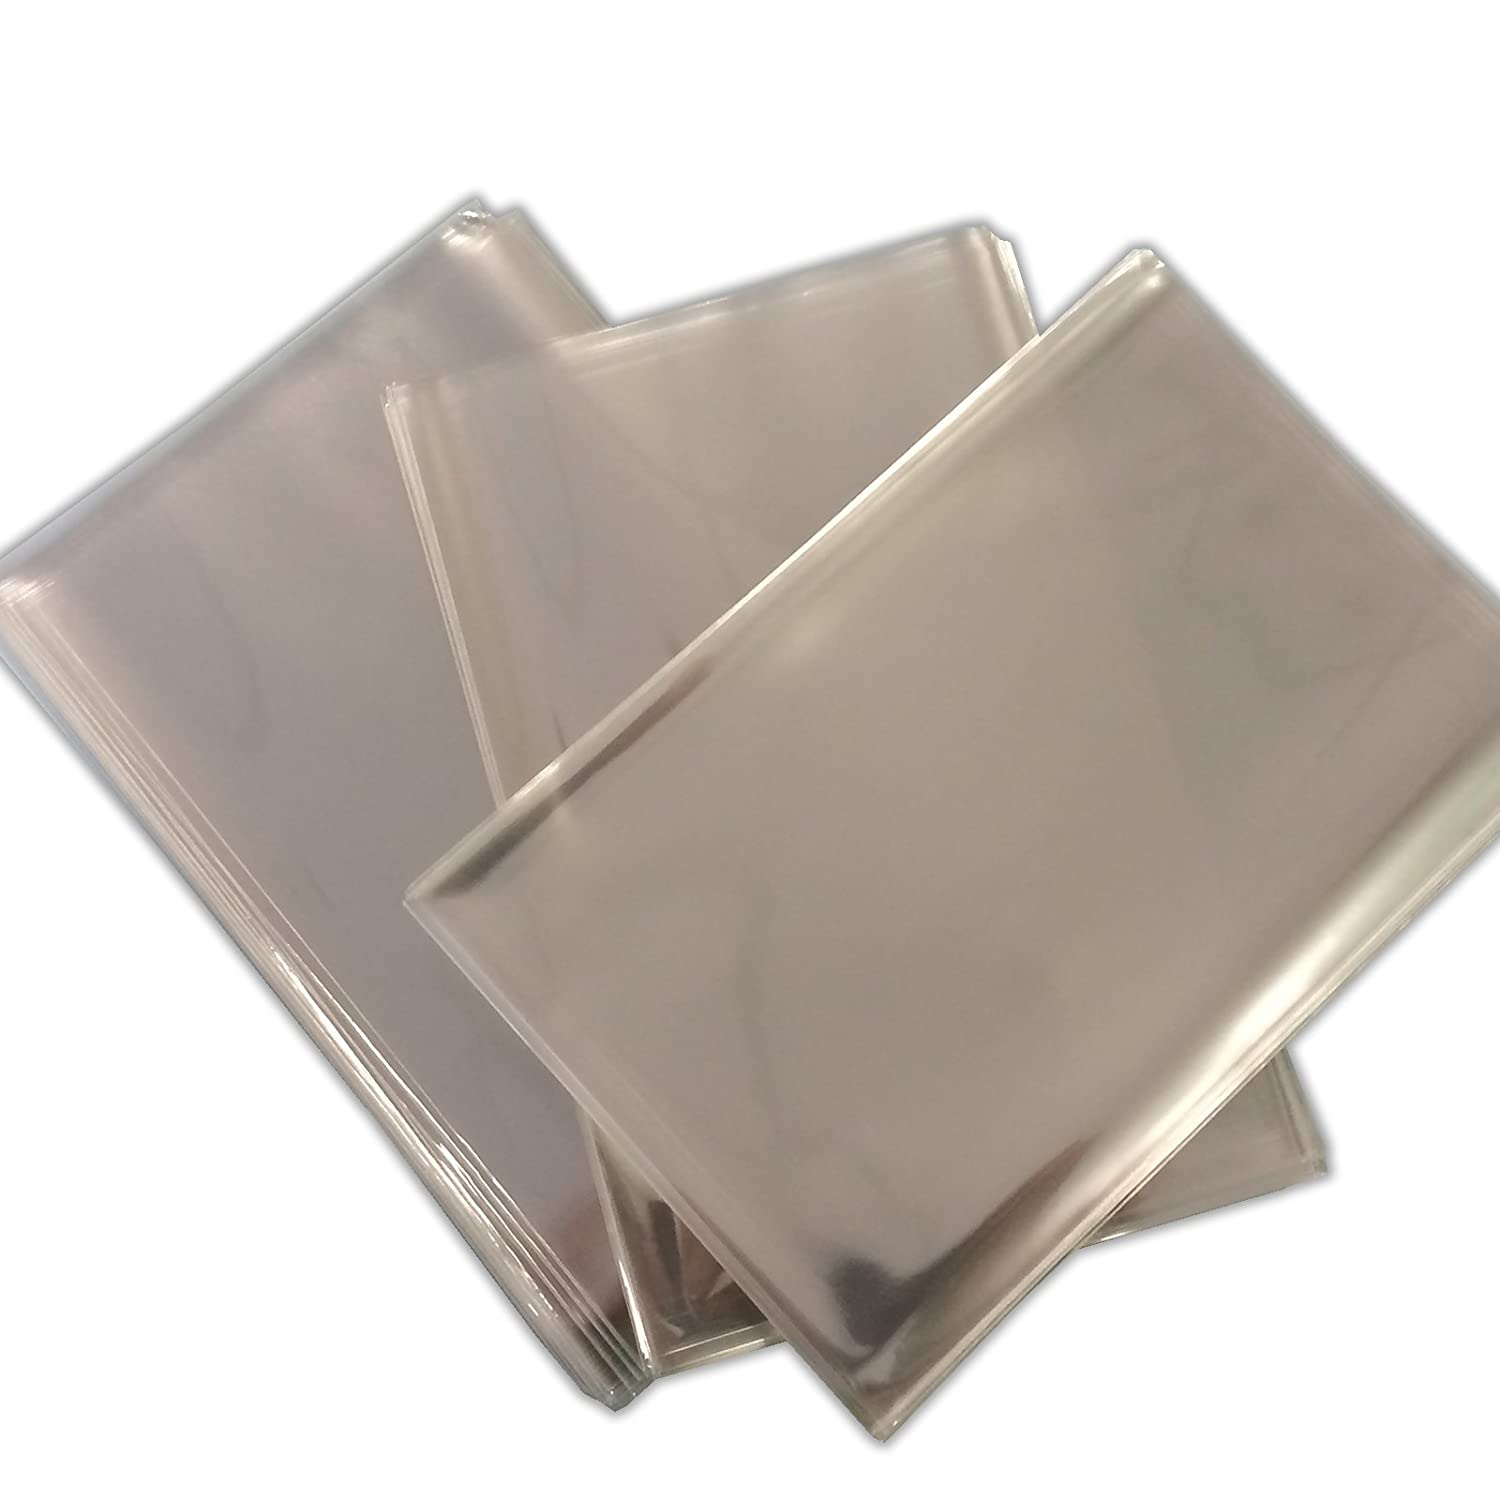 50 Clear Cellophane Sweet / Party / Gift Bags 3' x 5' POLYBAGSTORES LTD .